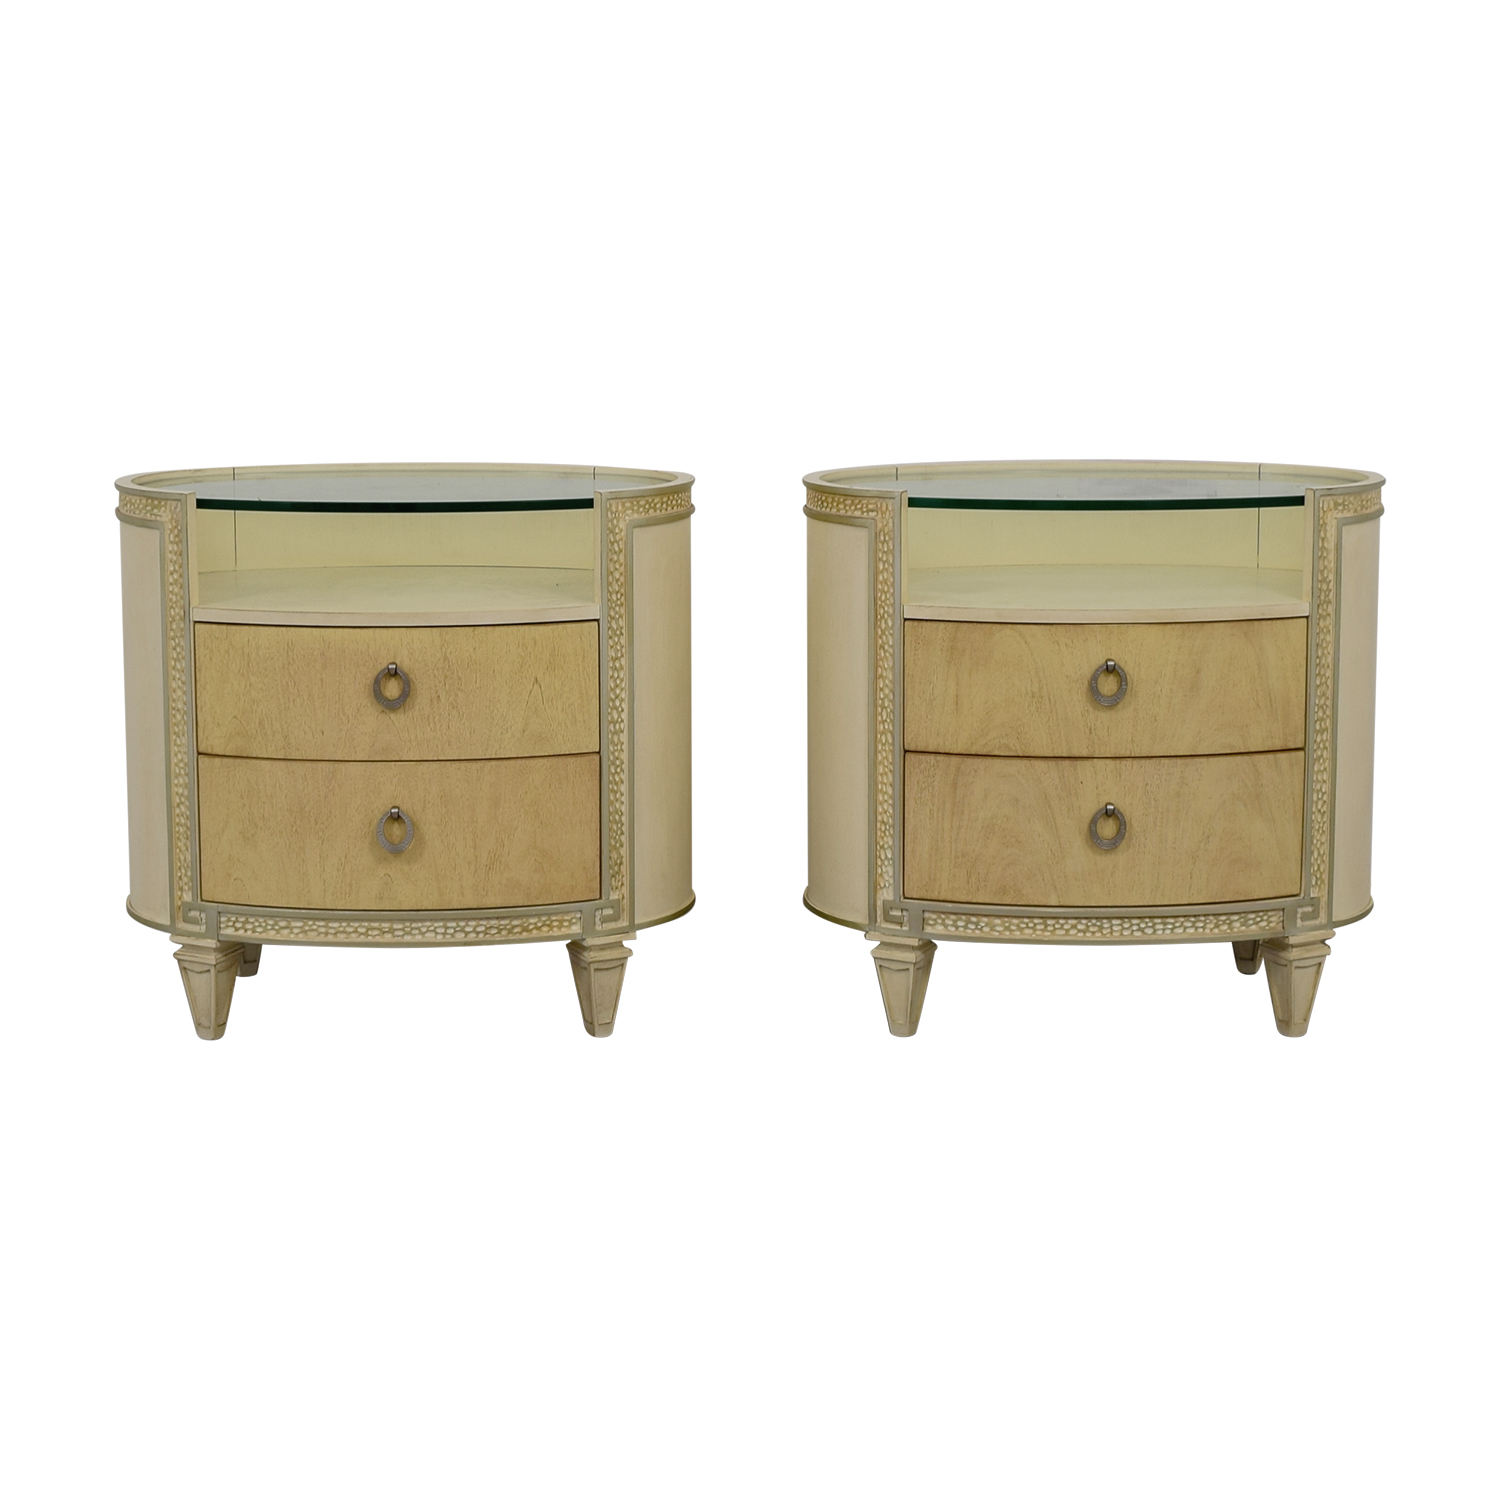 Compositions Compositions Carlton Cream and Glass Oval Two-Drawer Nightstand discount